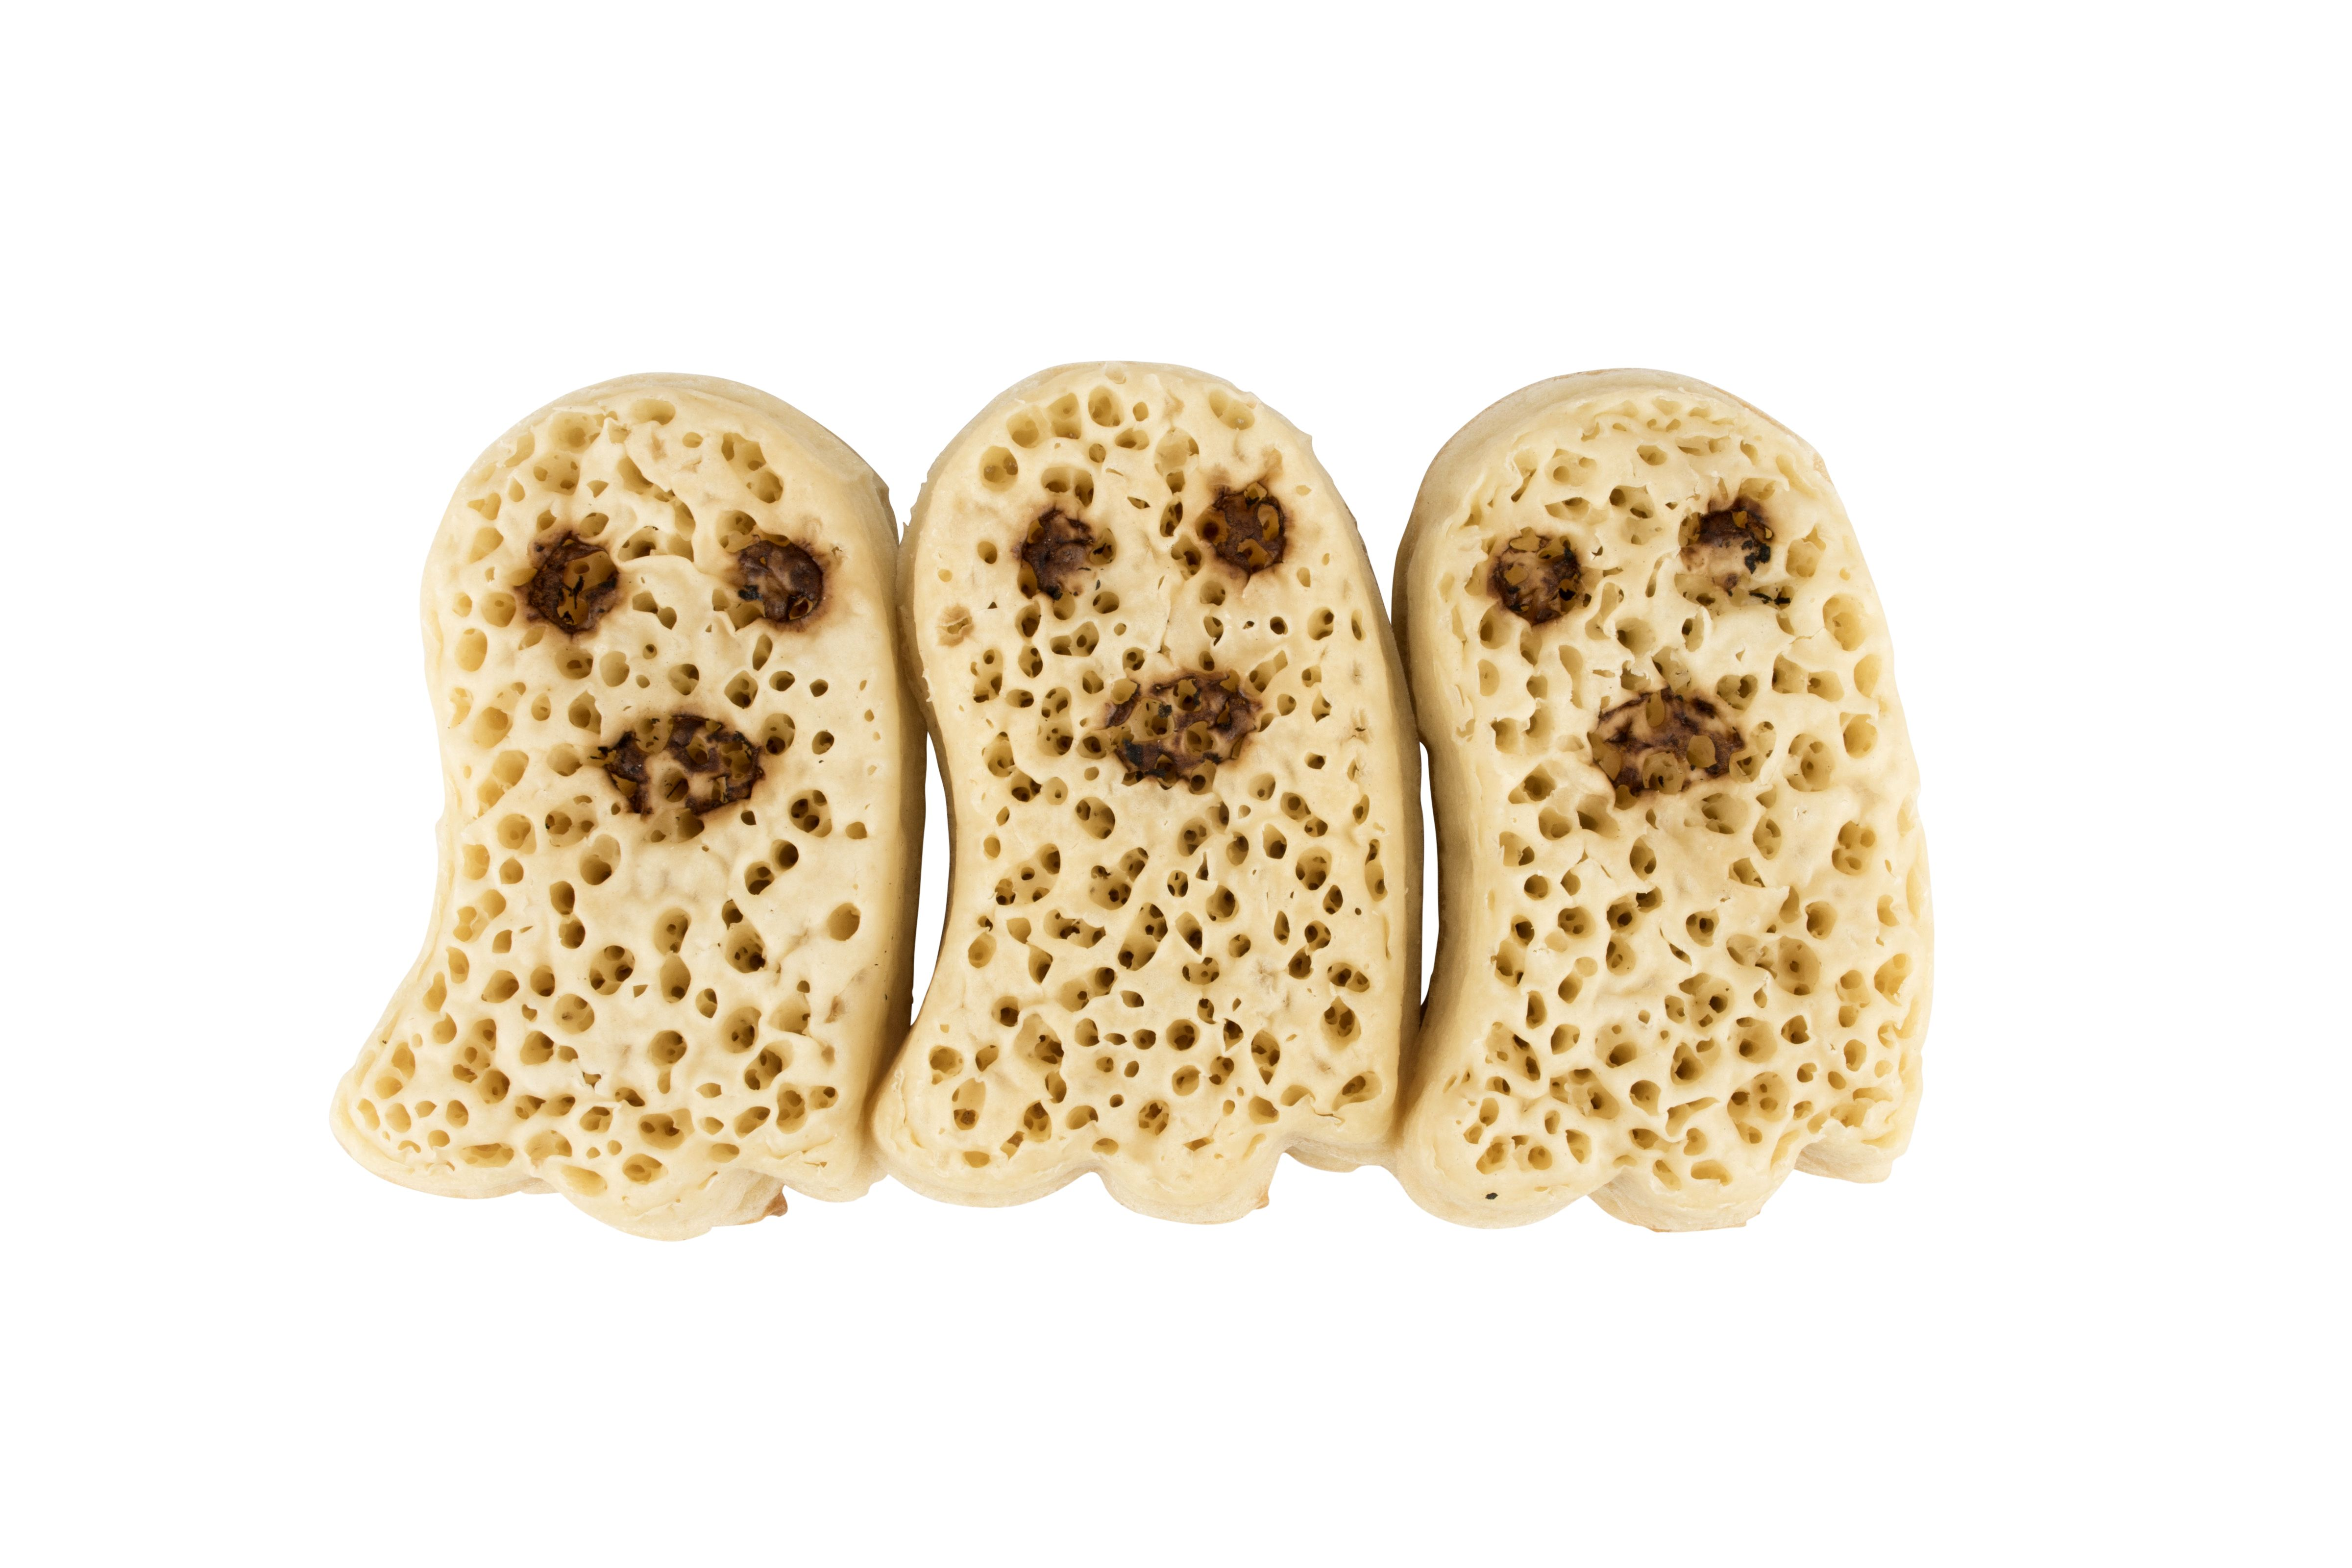 Asda's Ghost Crumpets are back for your spooky Halloween breakfast